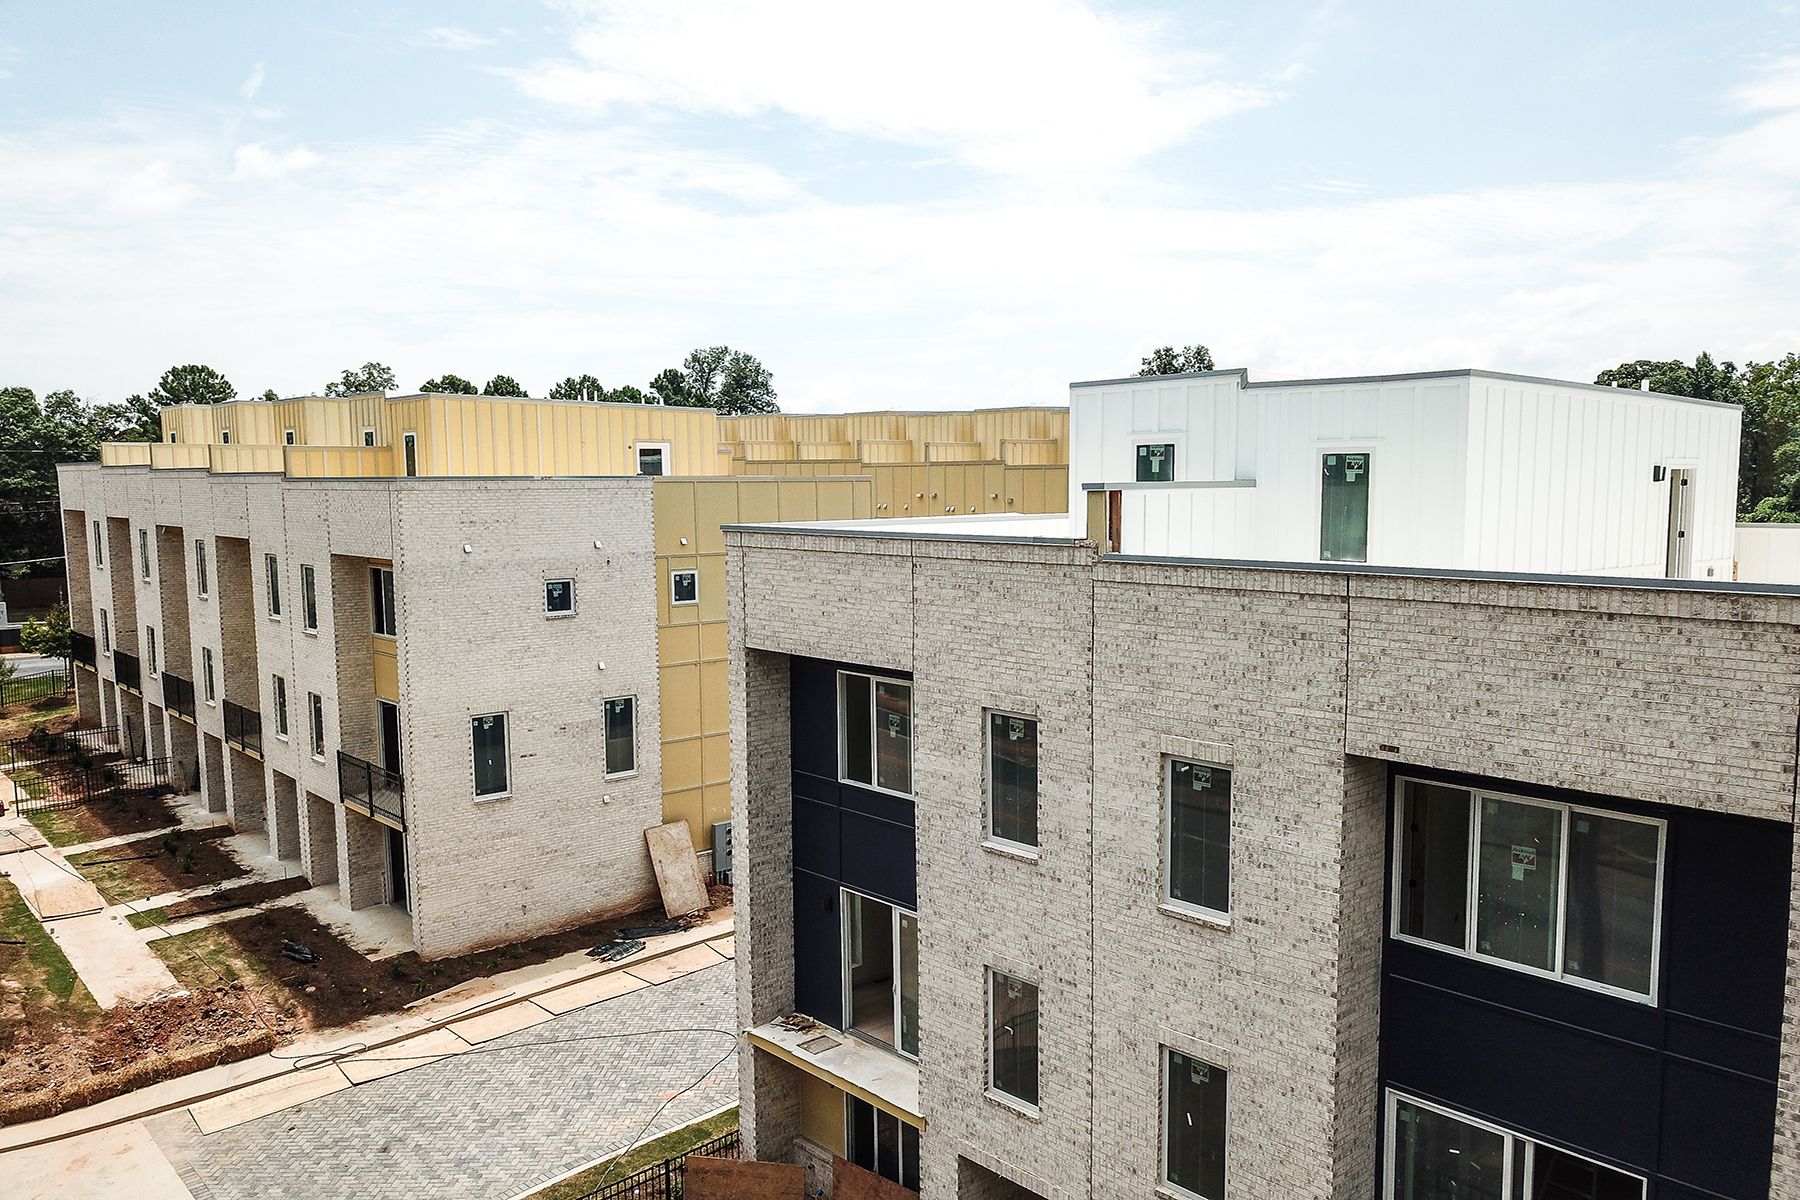 Additional photo for property listing at 62 Modern and Innovative Townhomes Featuring Rooftop Decks 2029 Memorial Drive #2 Atlanta, 조지아 30317 미국